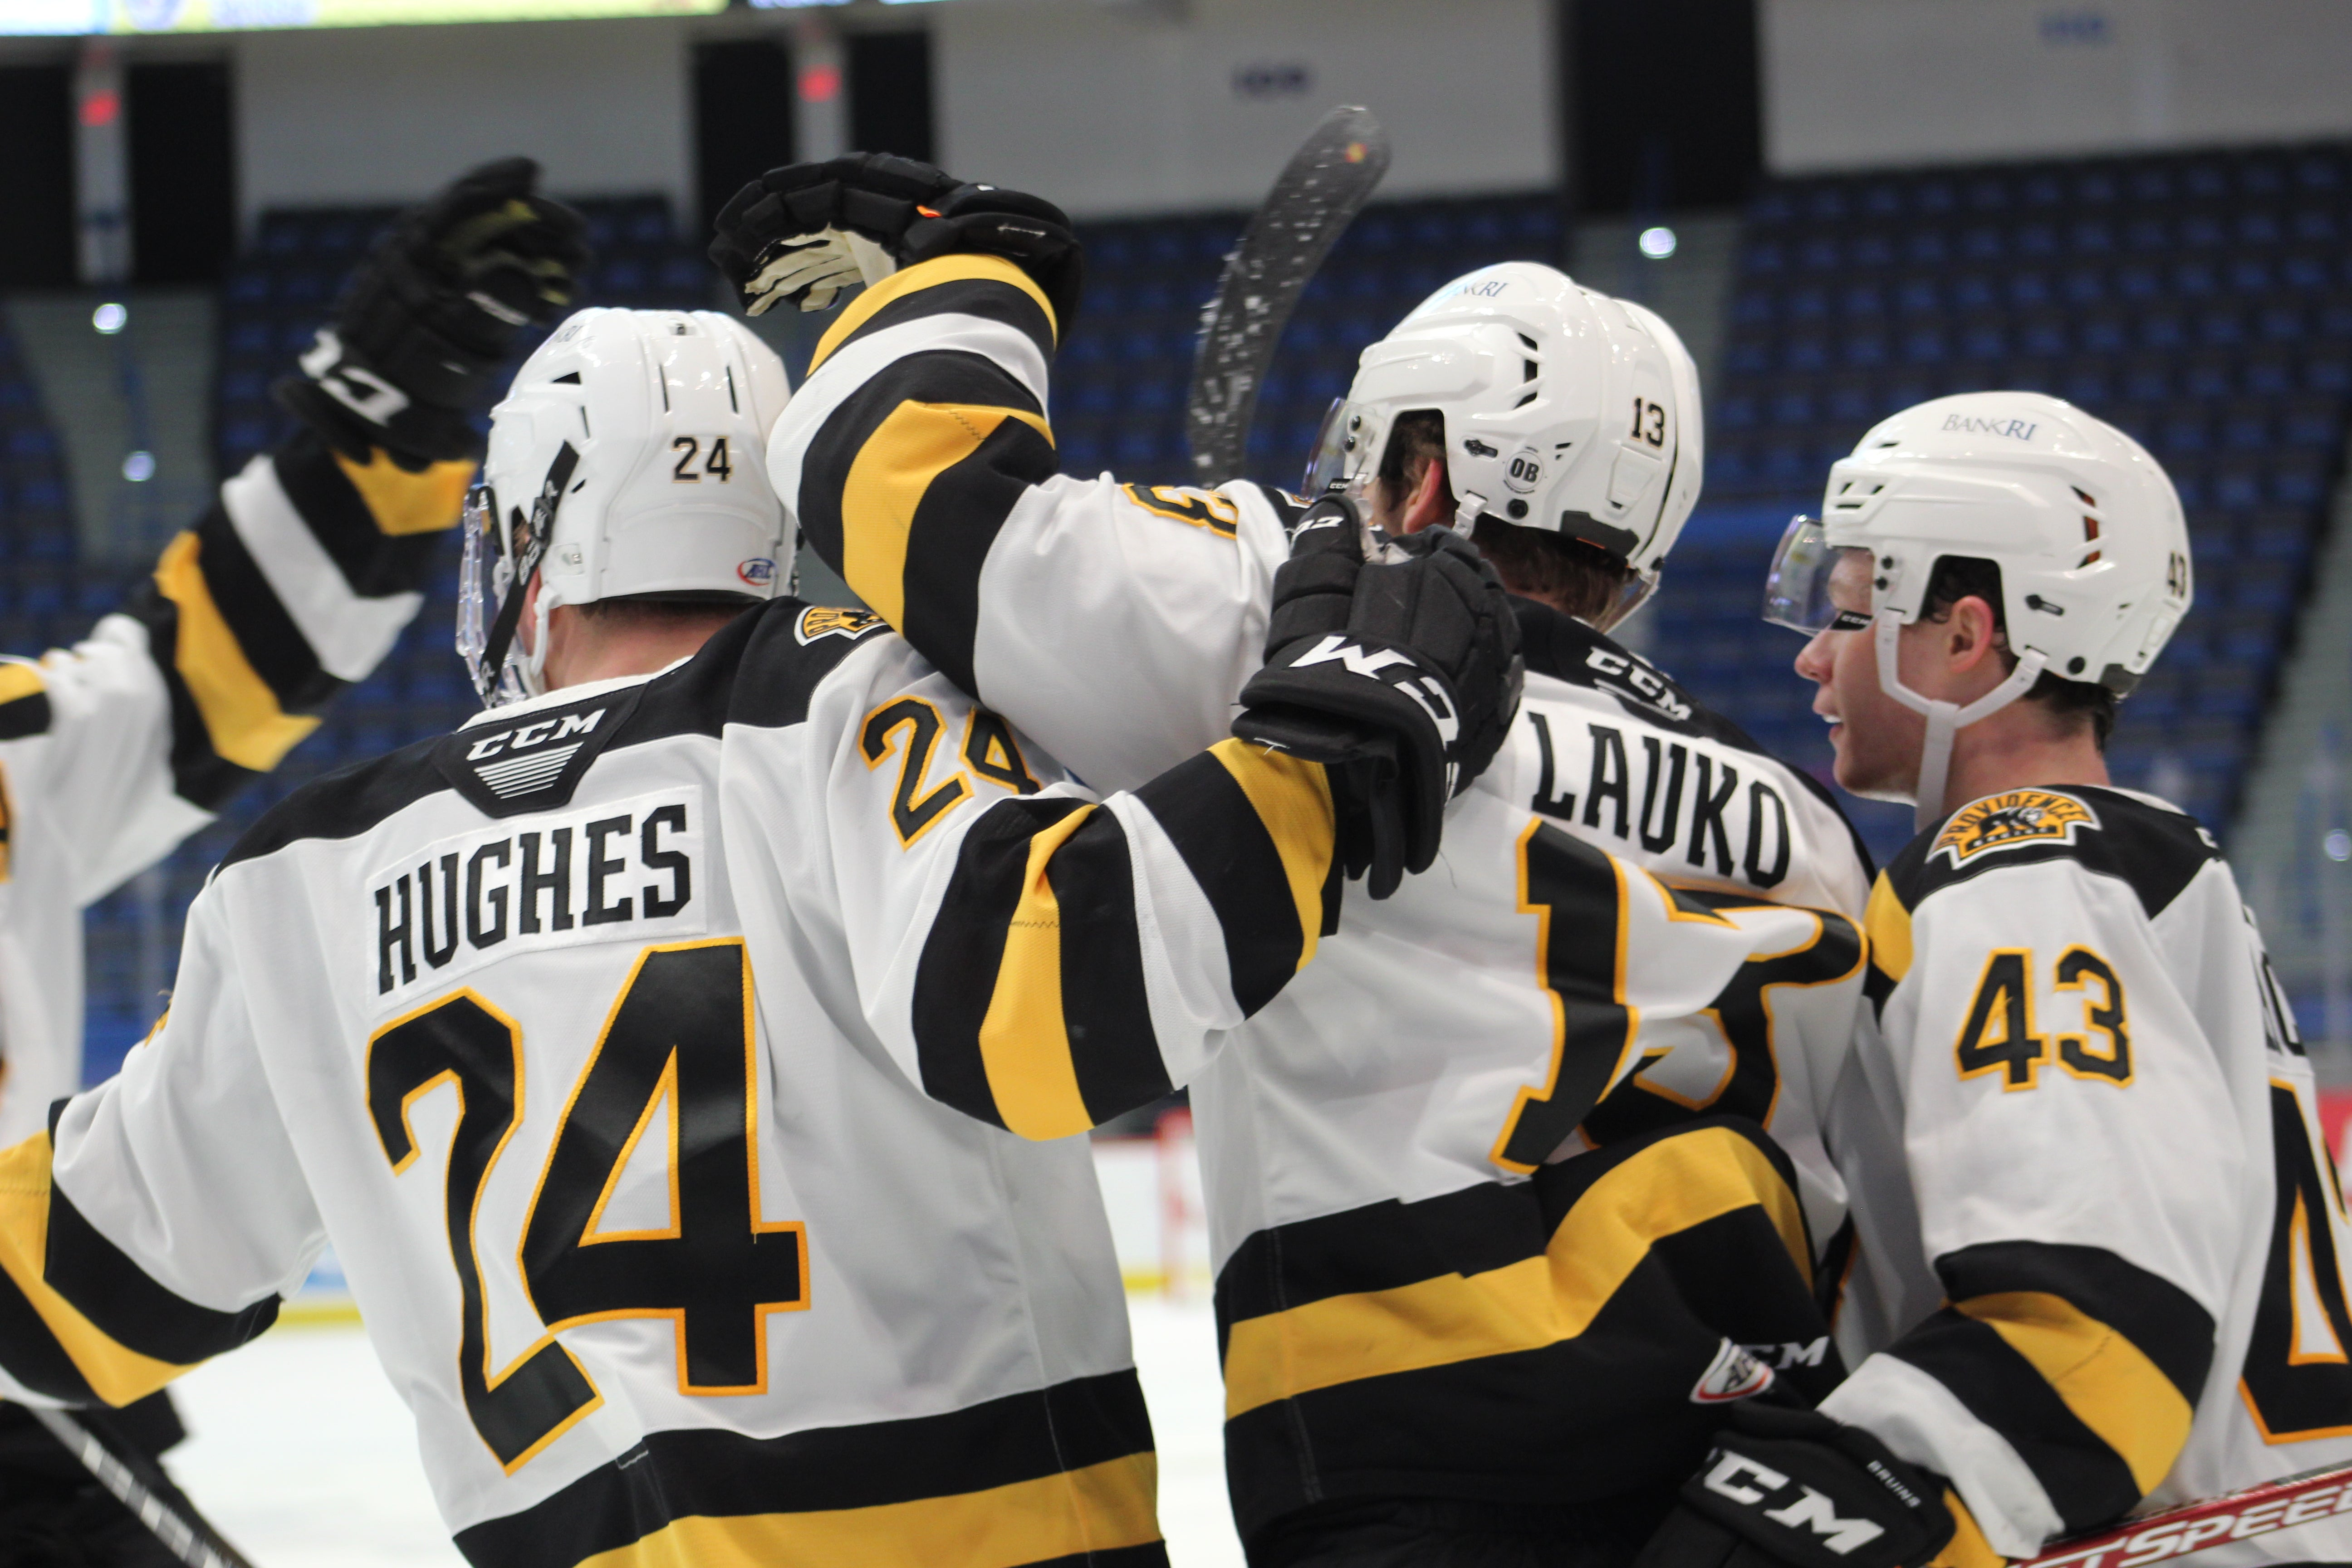 P-BRUINS RETURN TO THE WIN COLUMN, DEFEAT HARTFORD WOLF PACK, 4-2